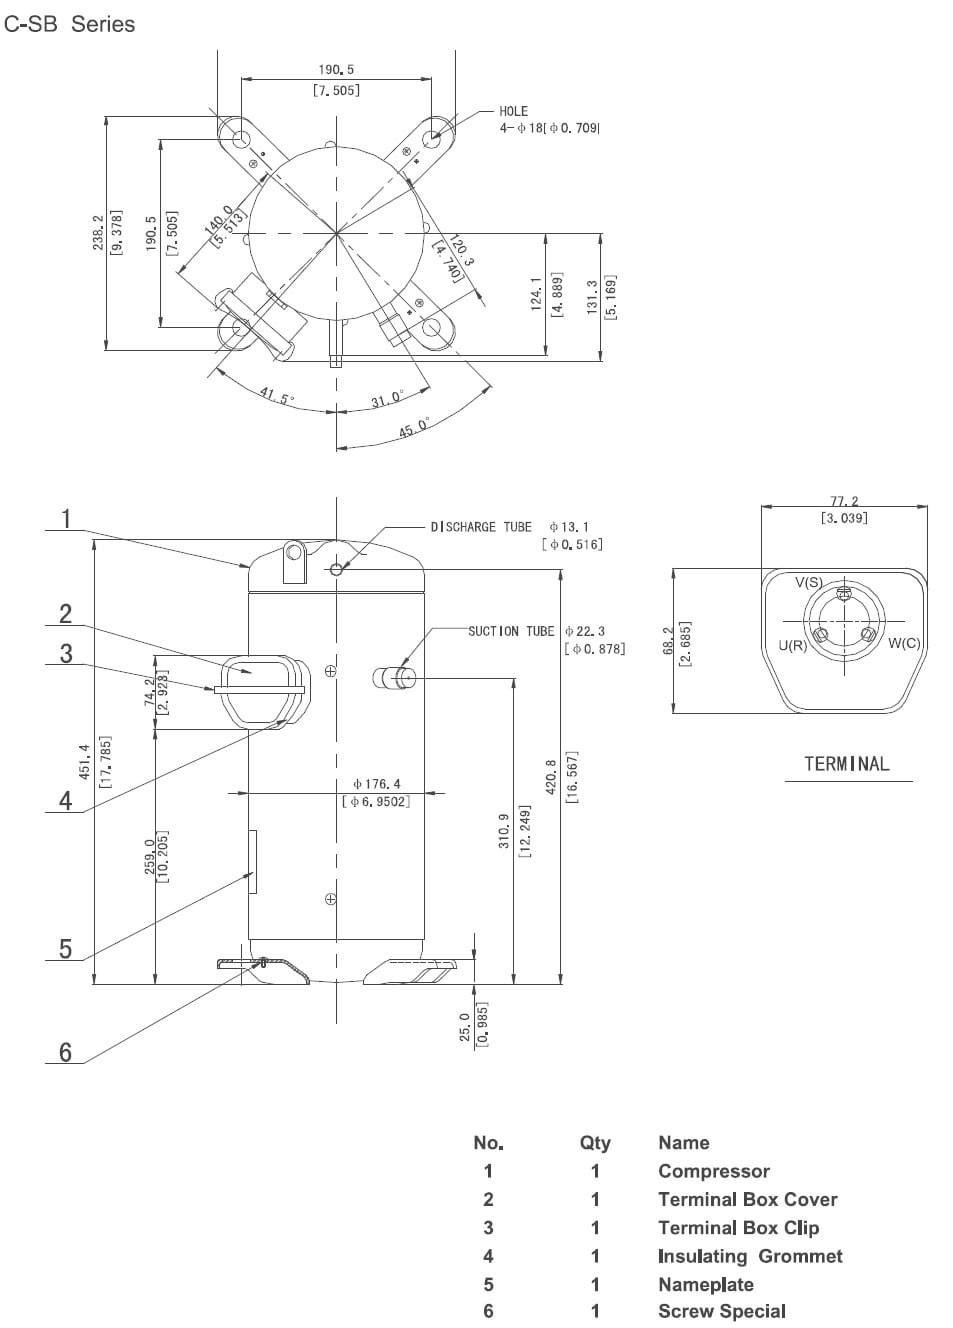 Potential Relay Wiring Diagram Sesapro Jpg Fitd93 2C ssld1 Diagrams